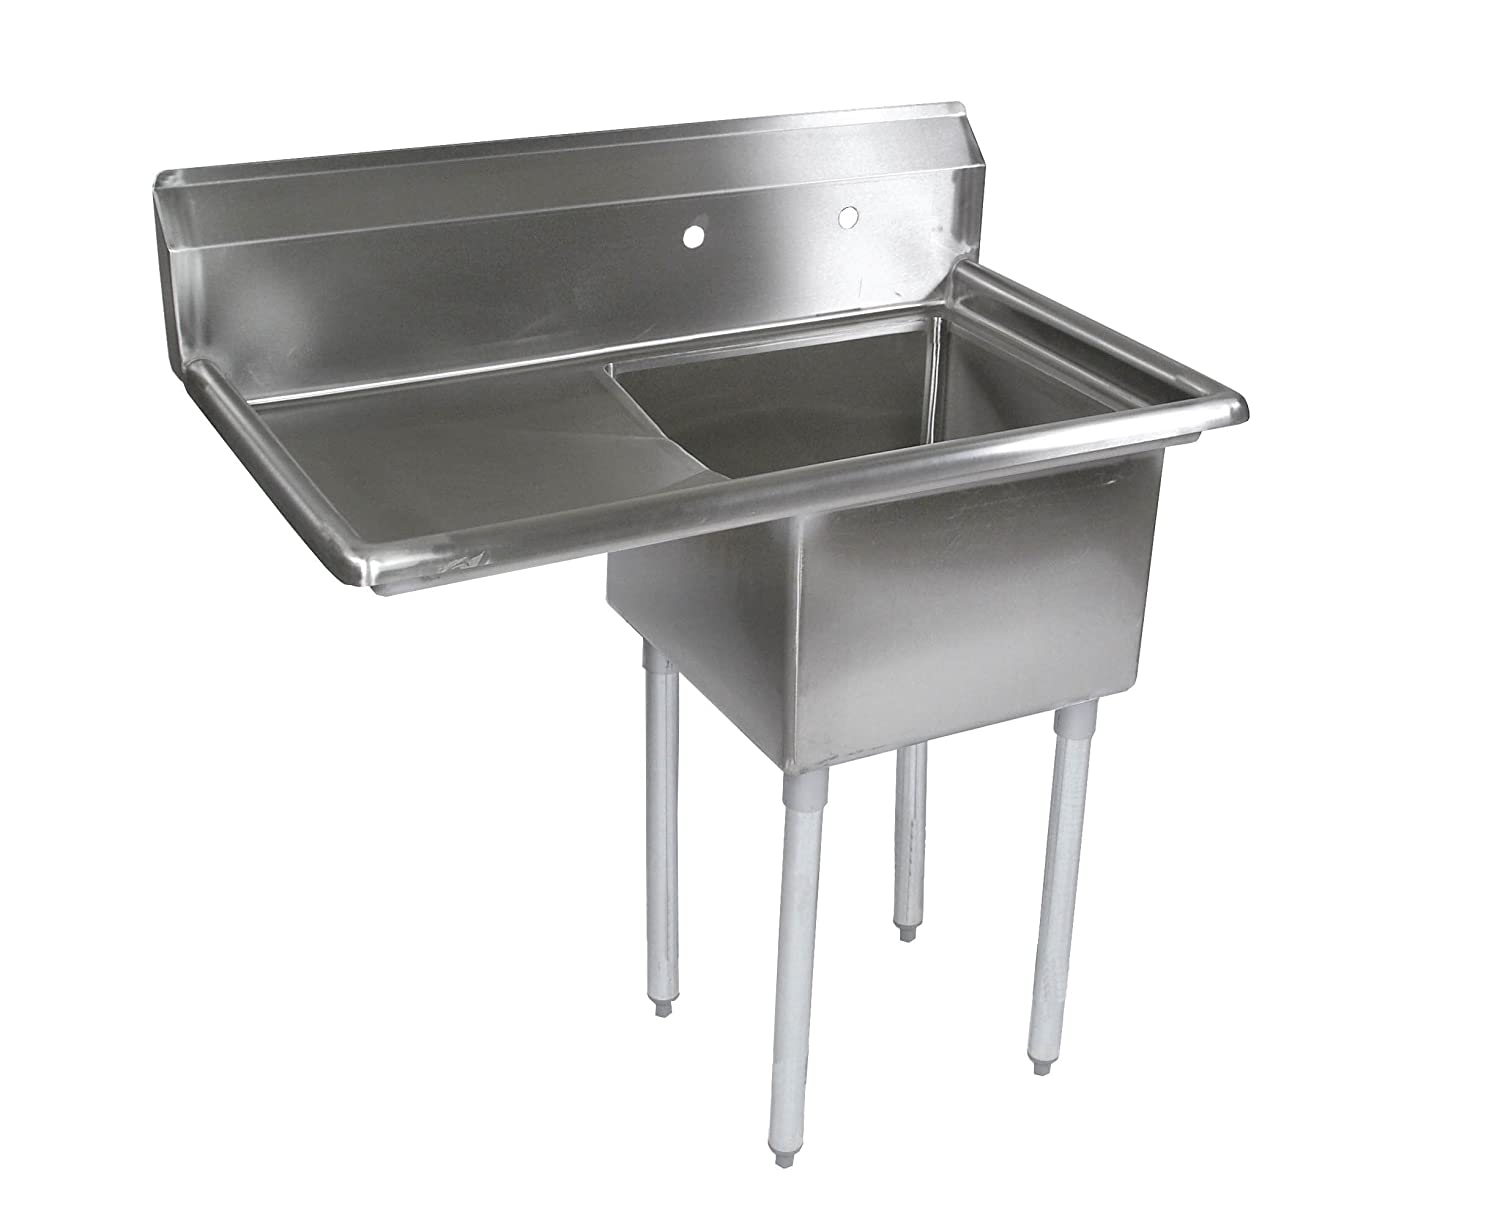 Sales of SALE items from new works John Boos E Series Stainless Steel Bowl Limited time for free shipping Deep Compar 1 Sink 12